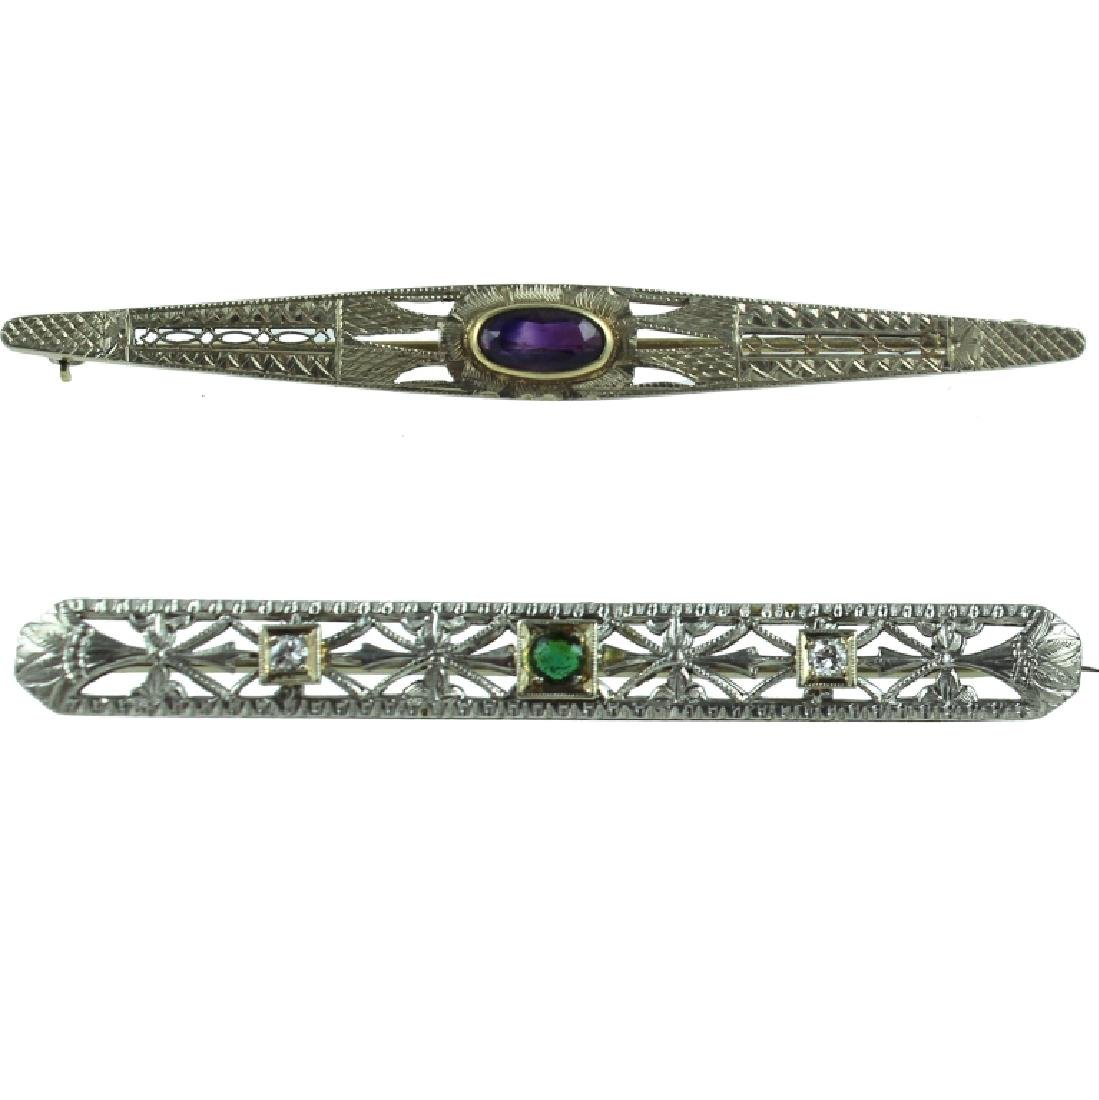 (2) ART DECO 14K FILIGREE BROOCH